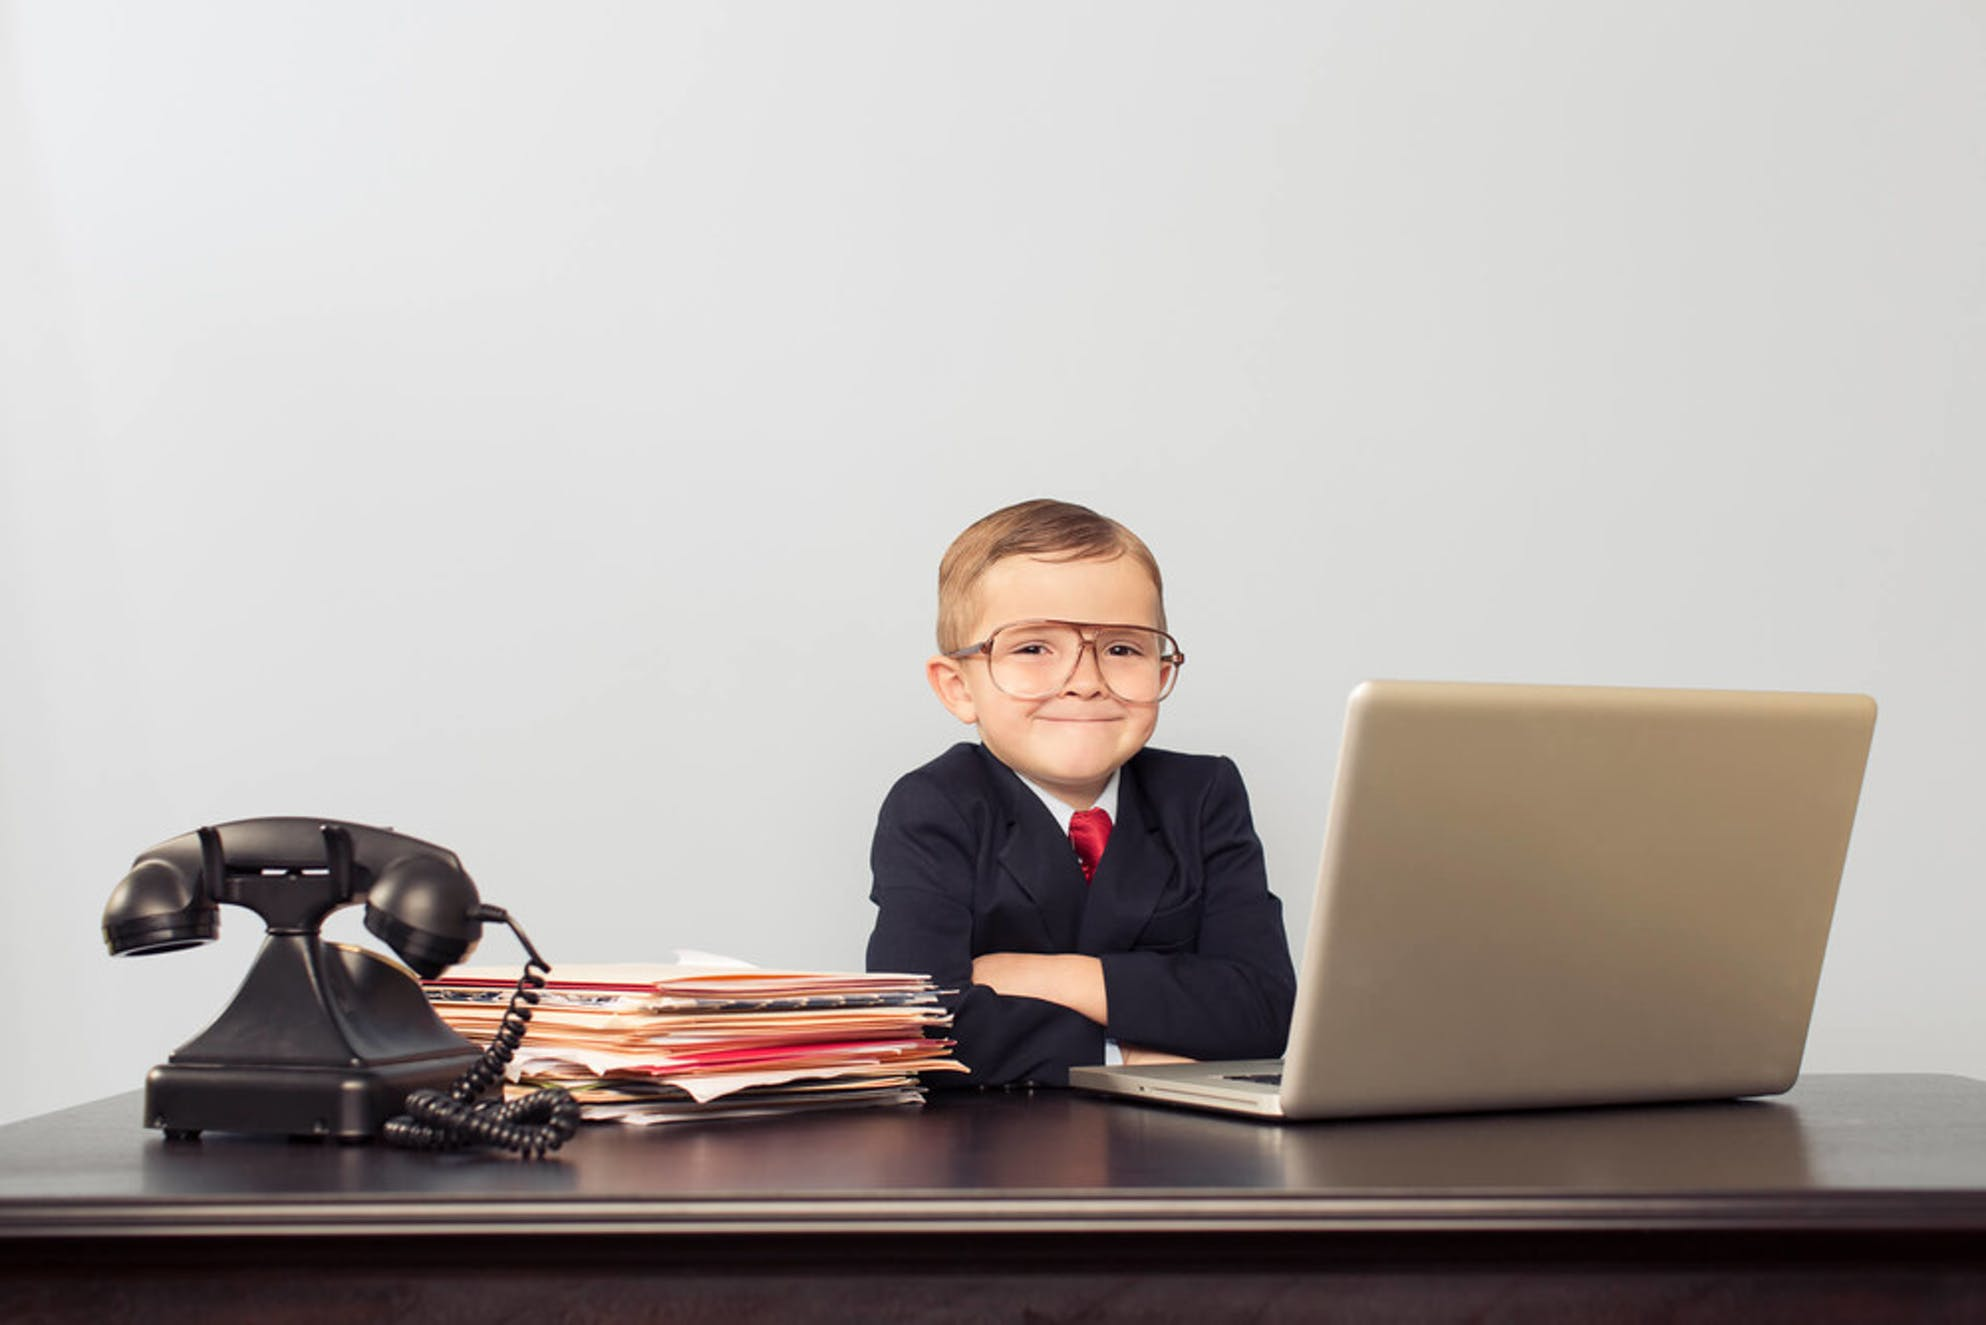 kid in front of laptop has no idea how to shop for mortgages